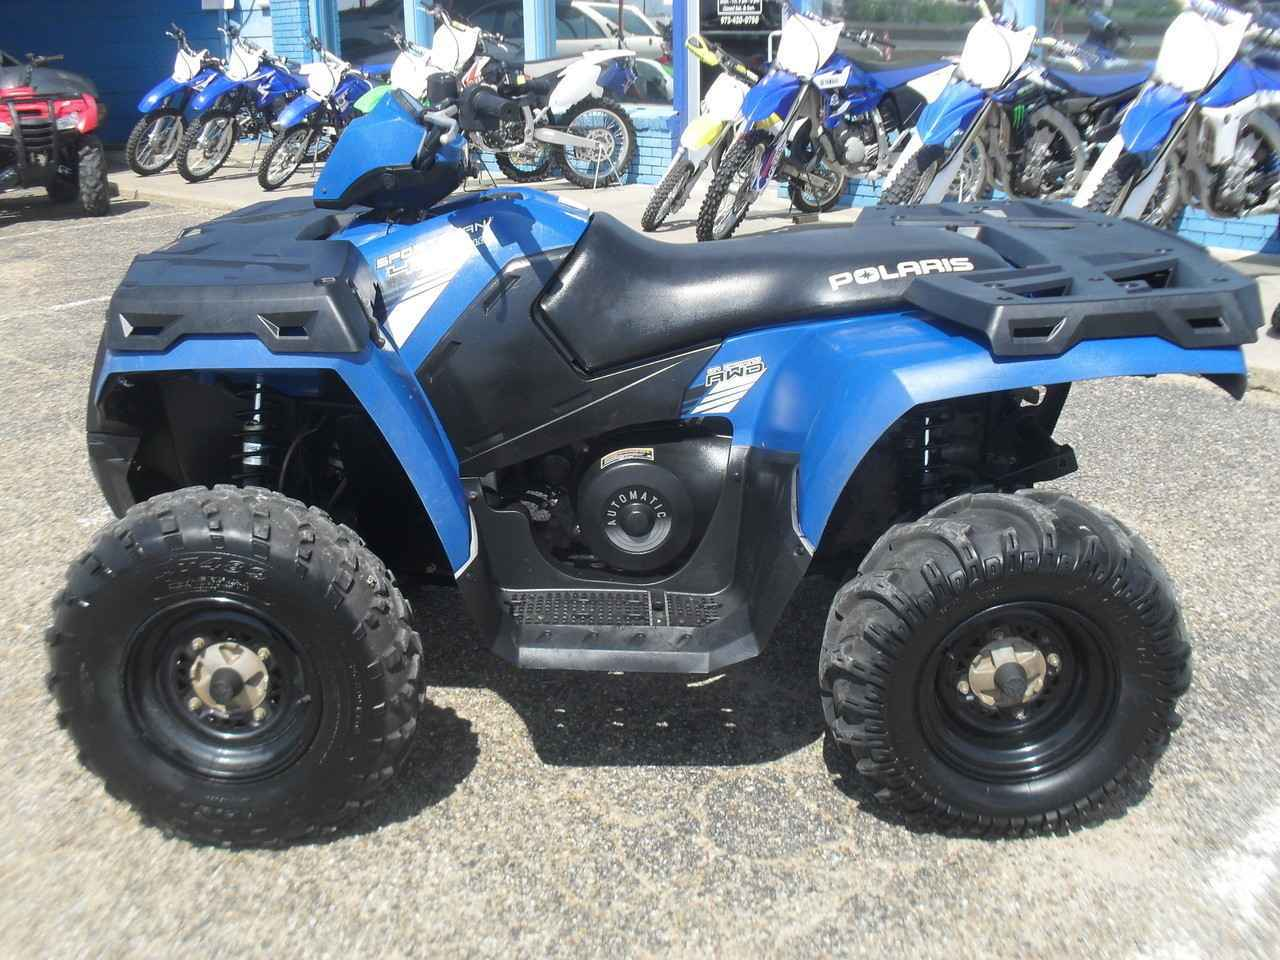 Used 2014 Polaris SPORTSMAN 400 H.O. ATVs For Sale in Texas on ATV ...